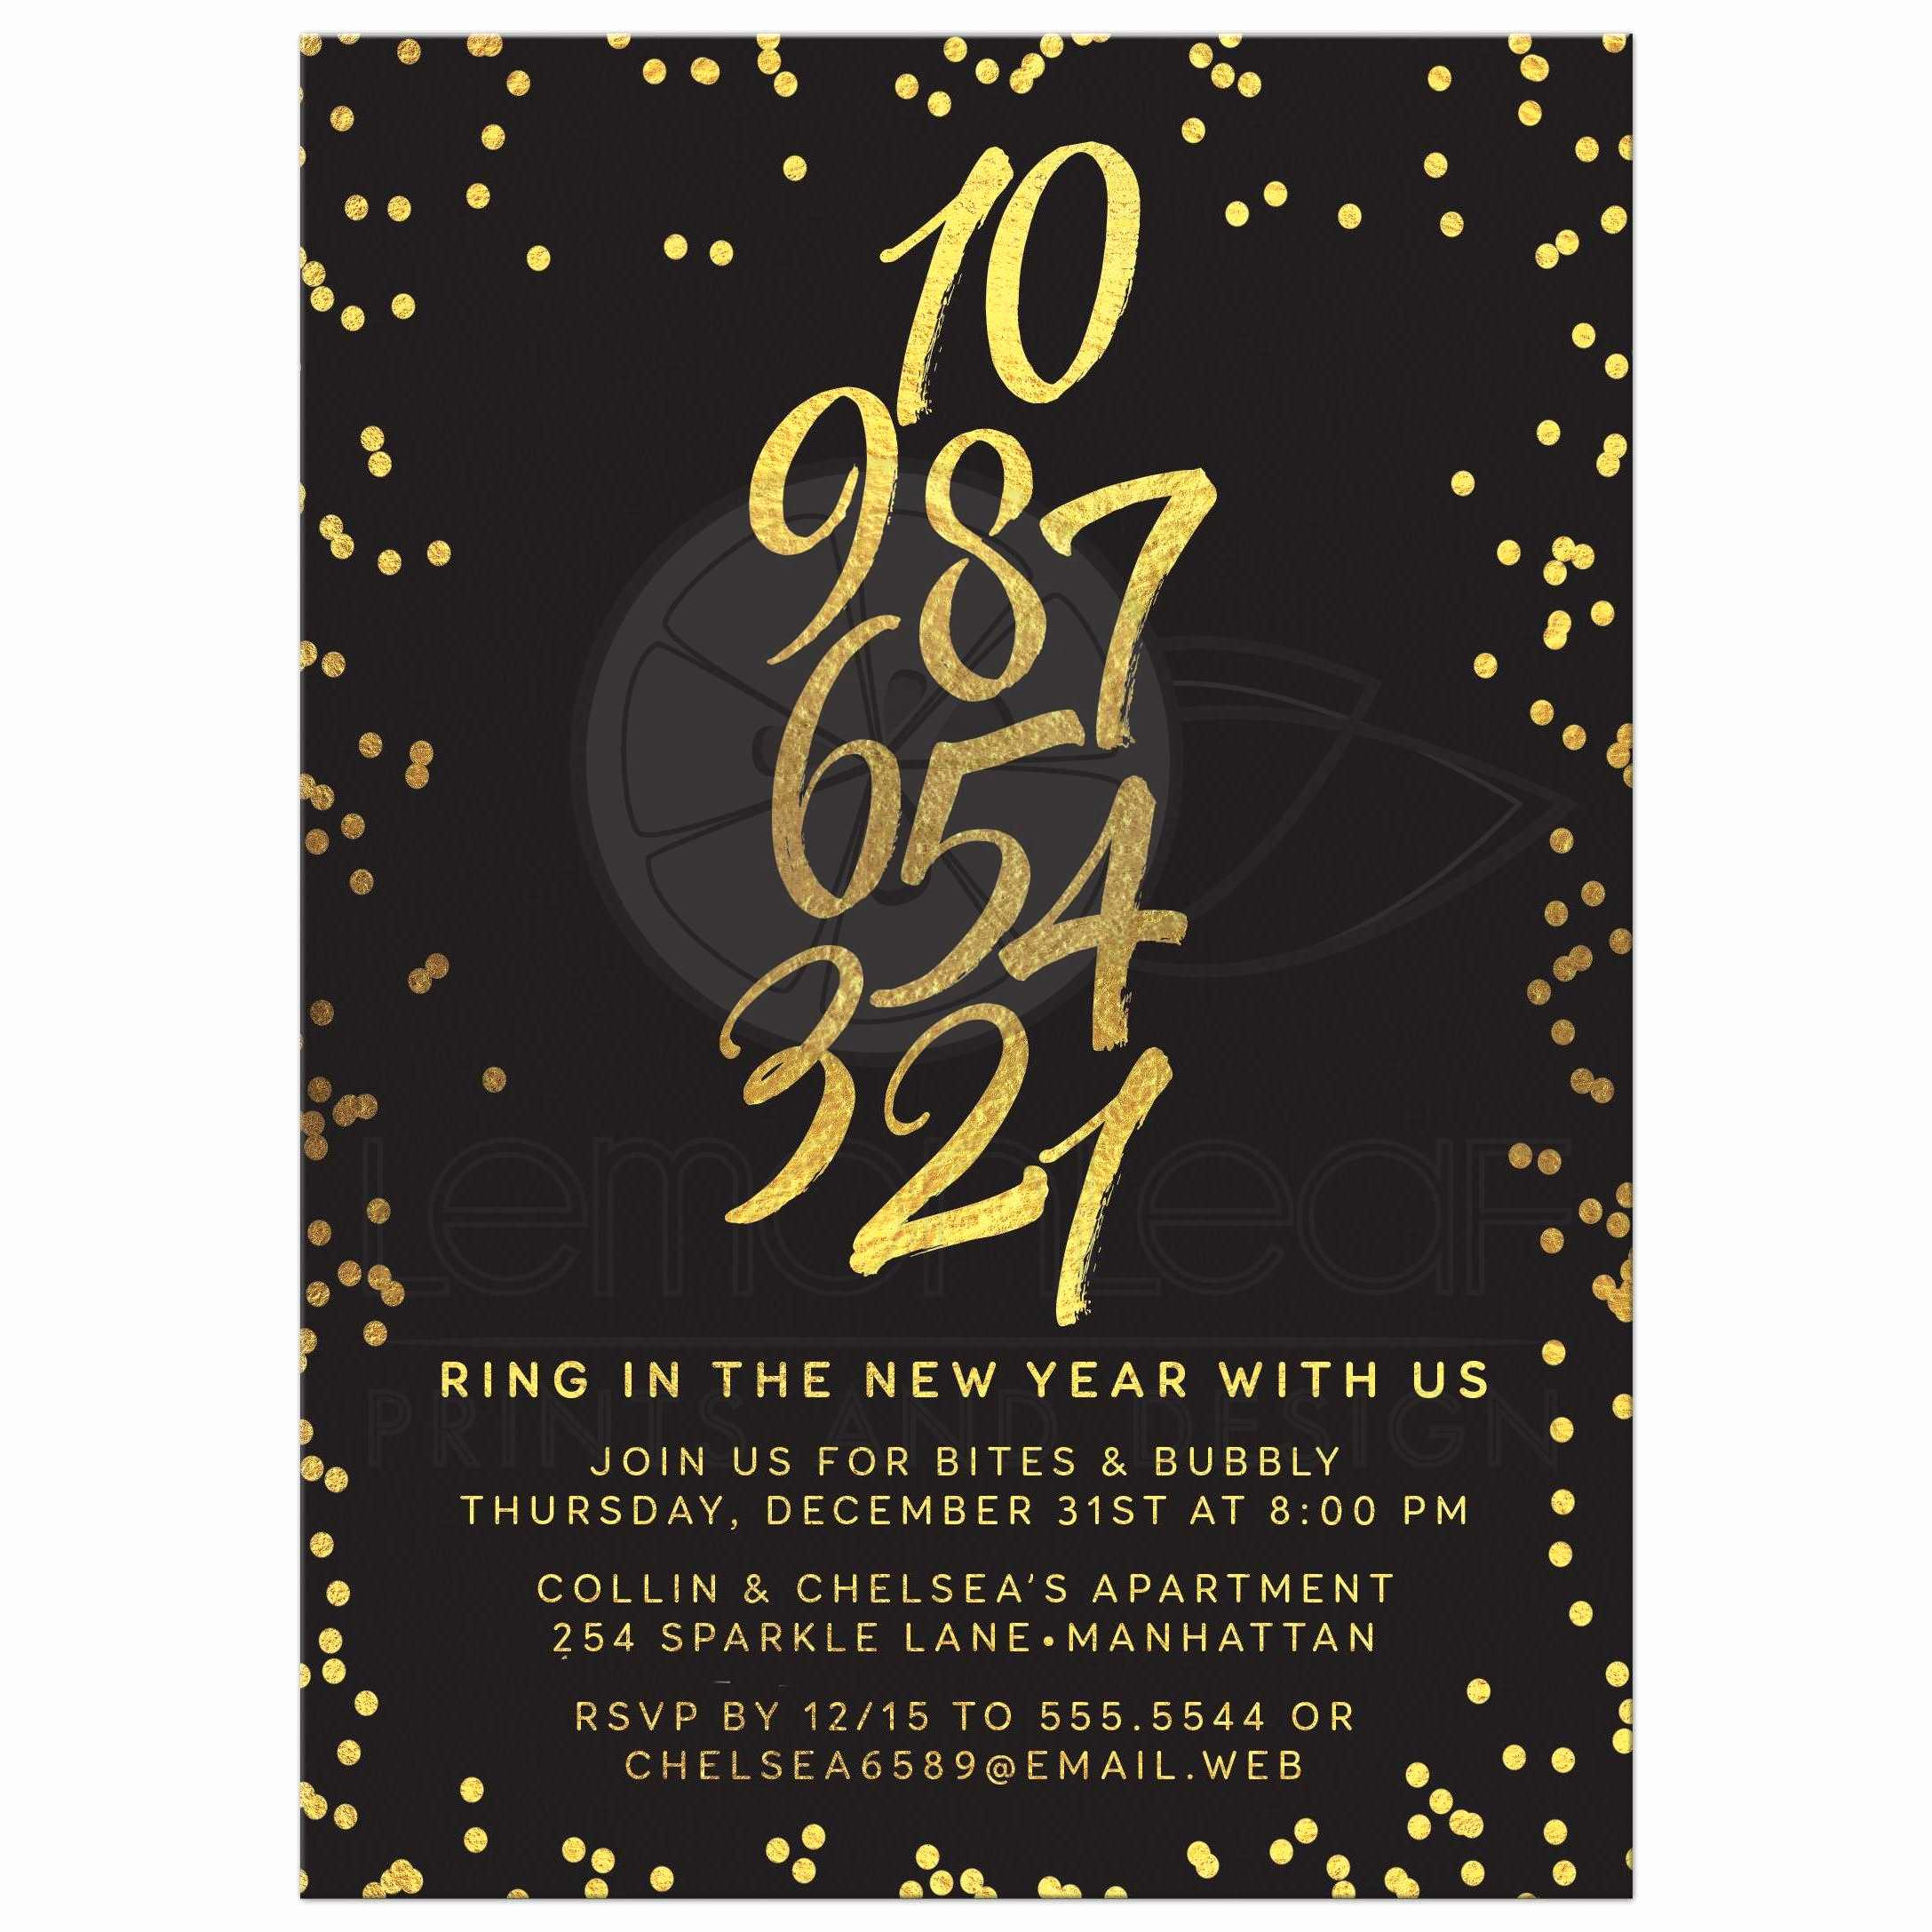 New Years Invitation 2019 Awesome New Year S Eve Party Invitation Golden Confetti Countdown